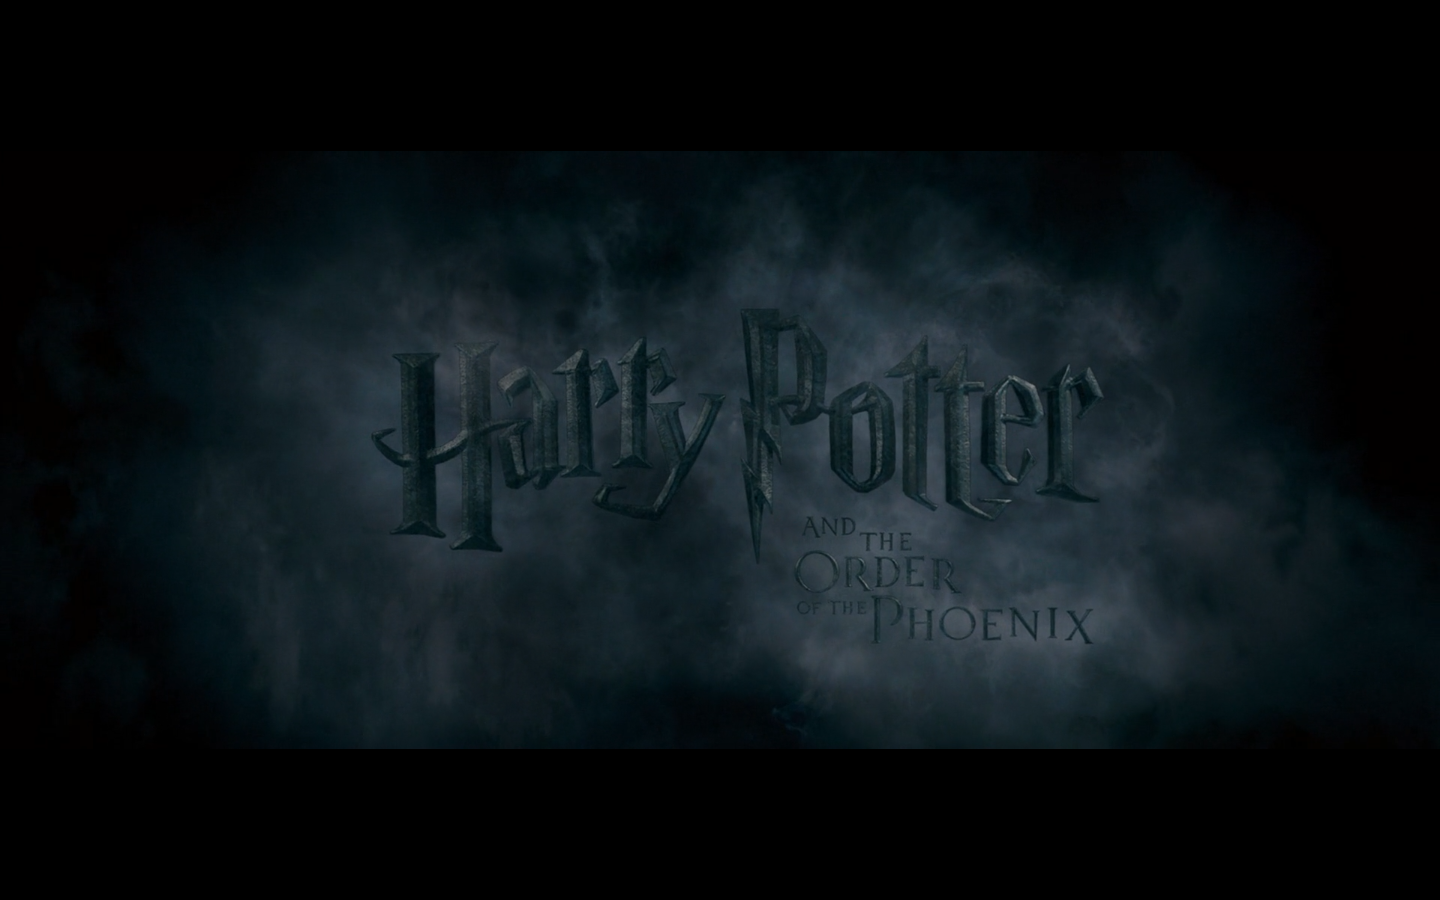 harry potter the phoenix order: